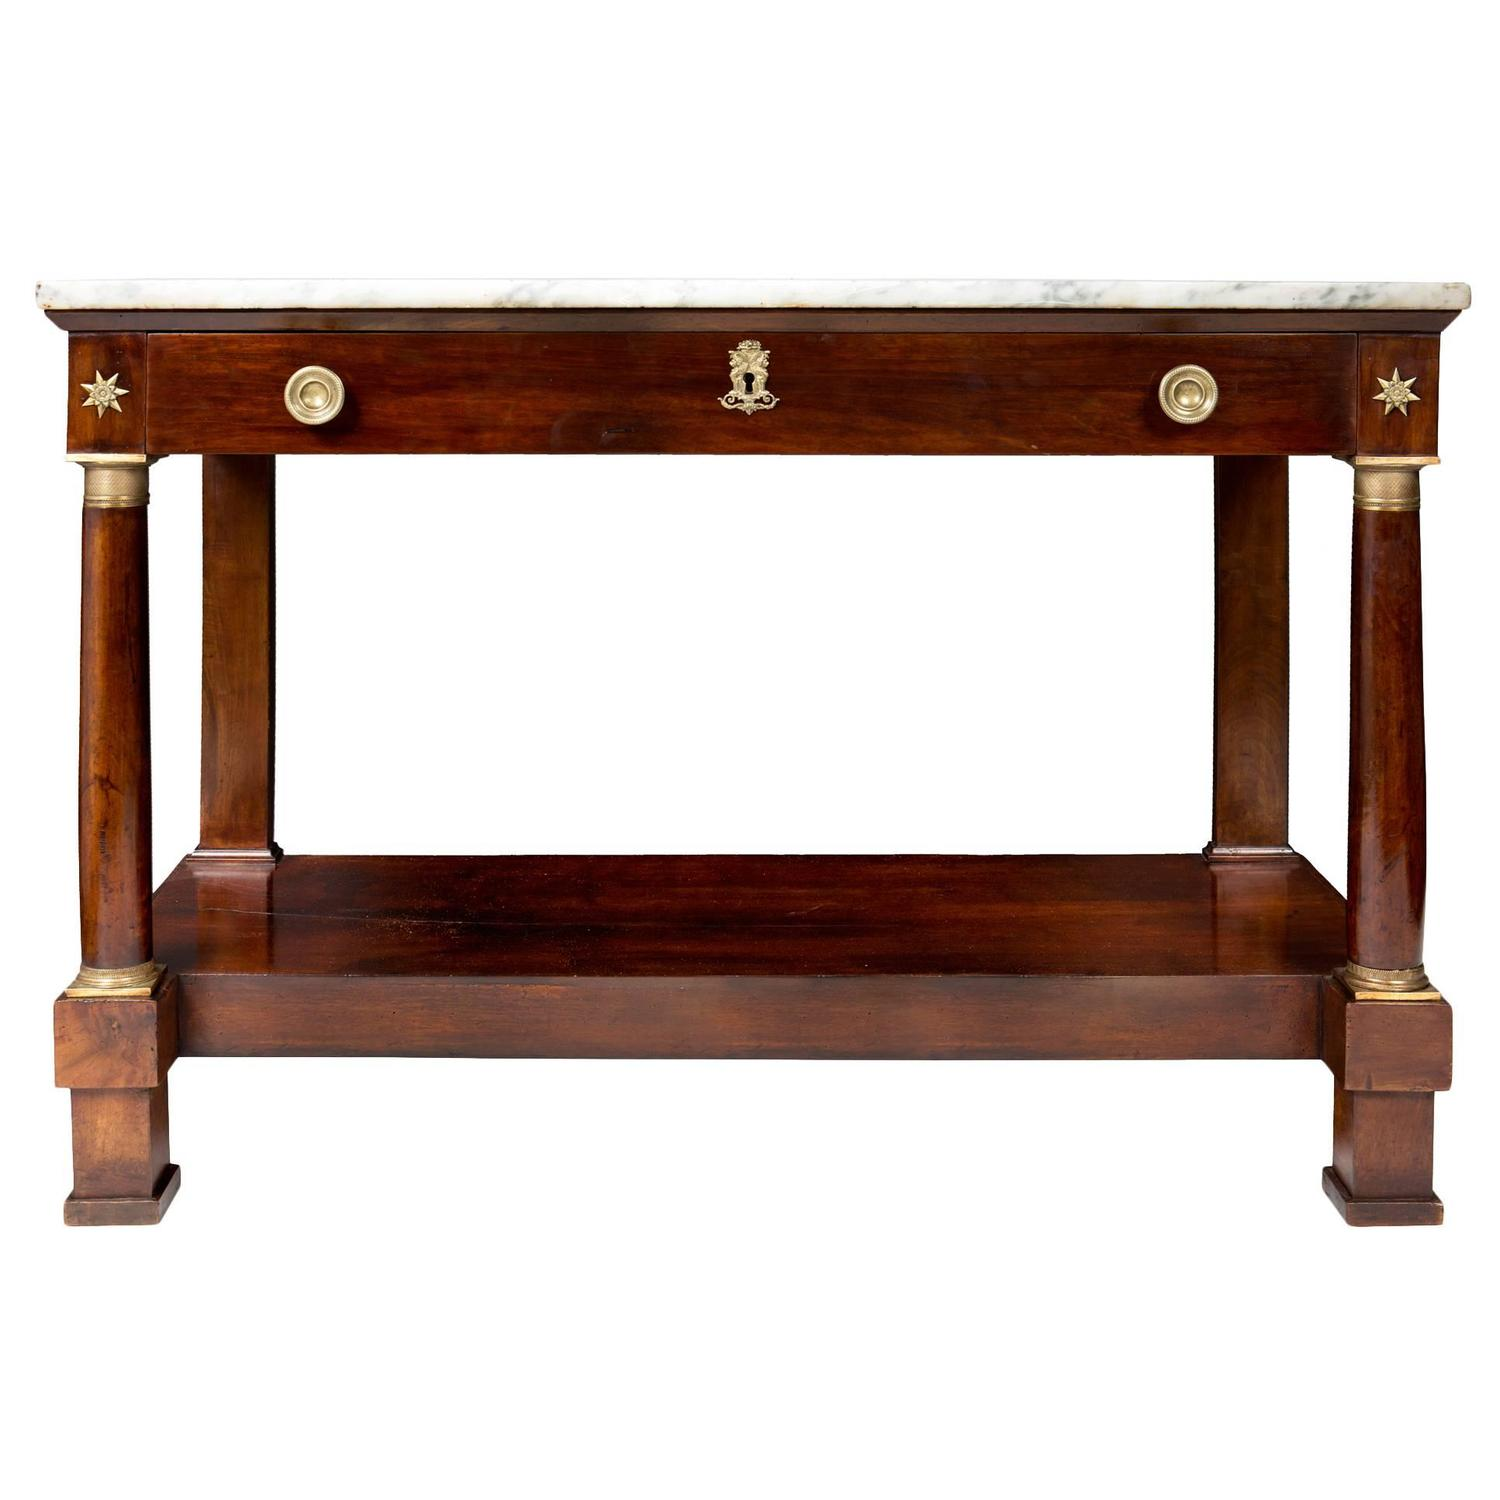 empire period console table with marble top at 1stdibs. Black Bedroom Furniture Sets. Home Design Ideas